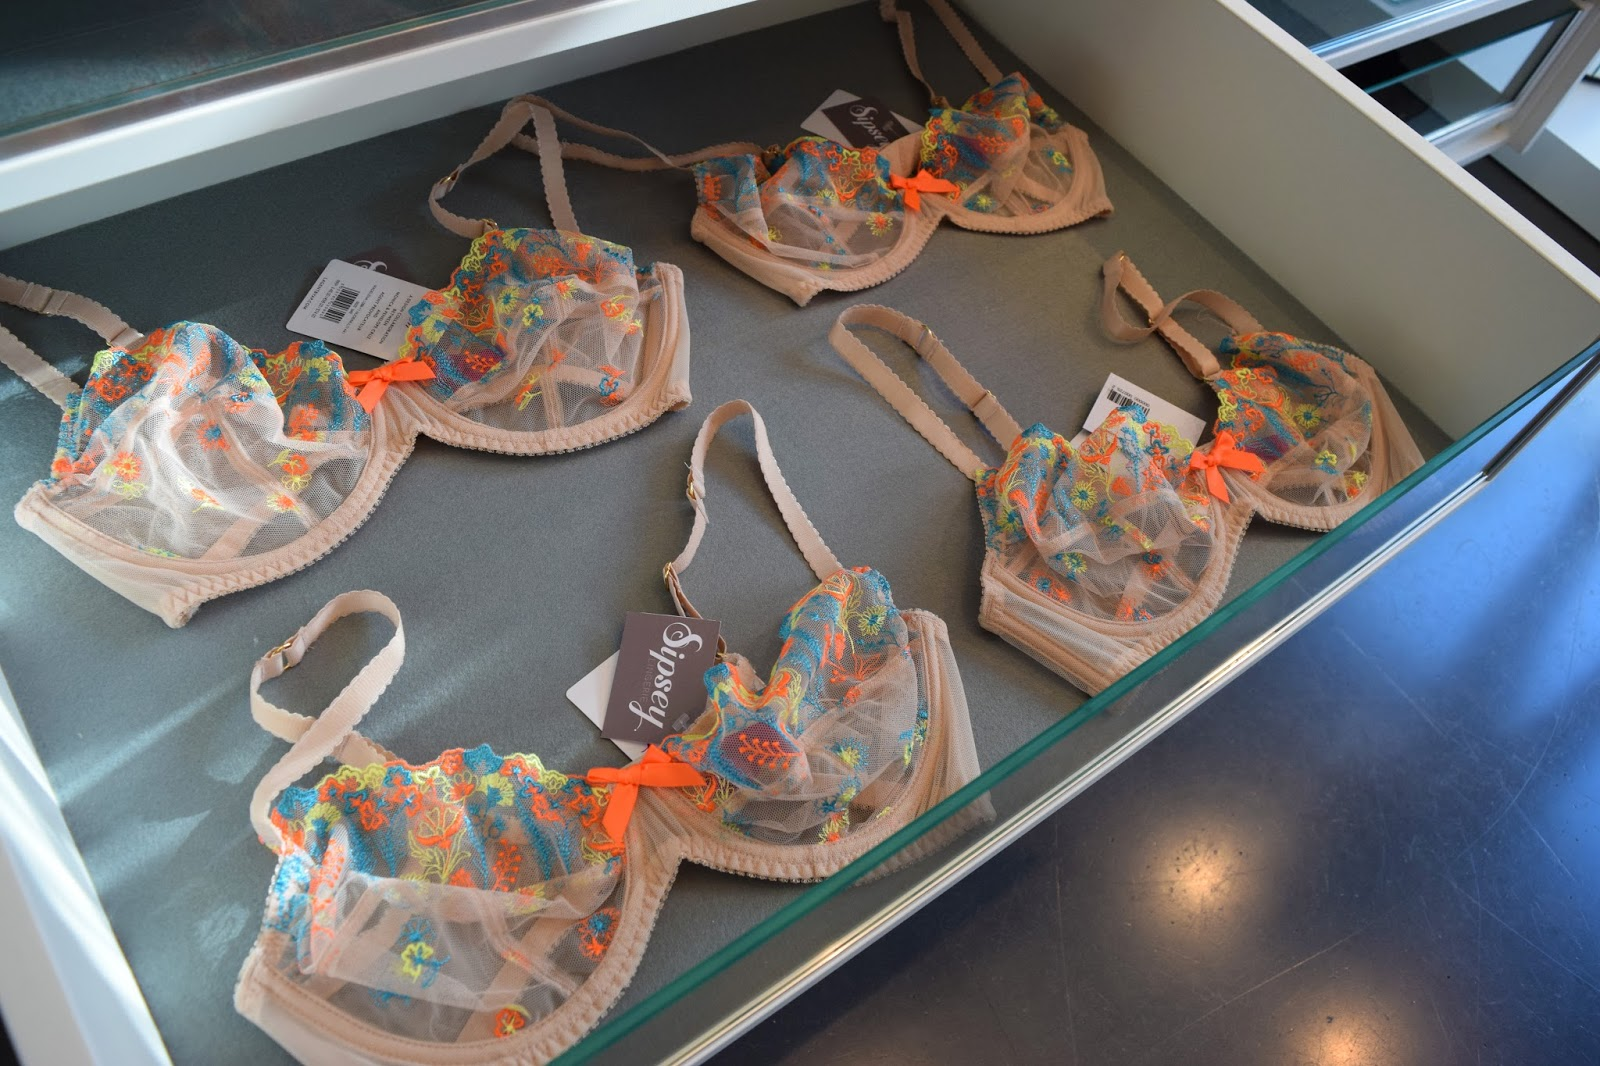 Some of the bras for sale inside Sipsey Lingerie